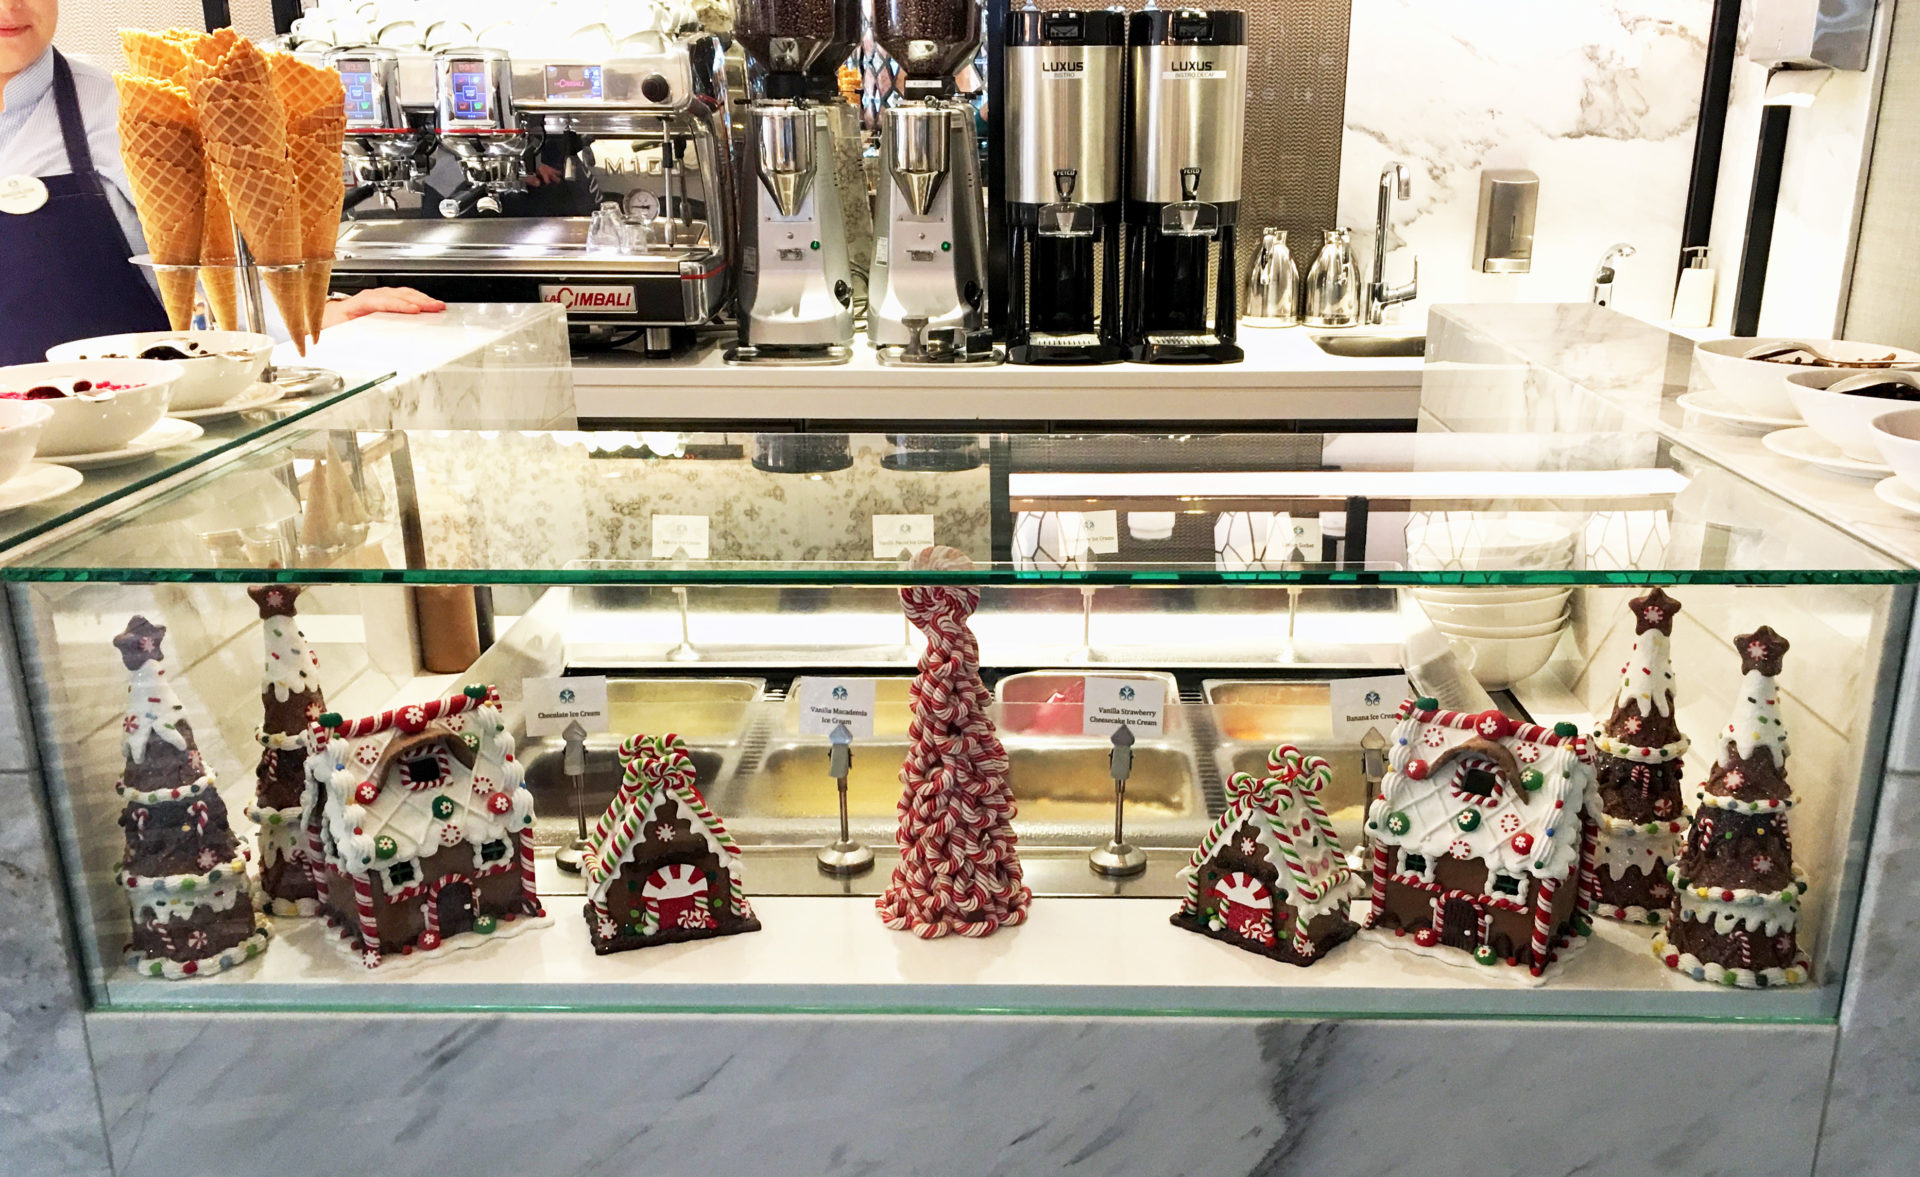 Crystal Mozart's ice cream bar is the ideal place to fine snow-capped gingerbread houses and other sweet treats.